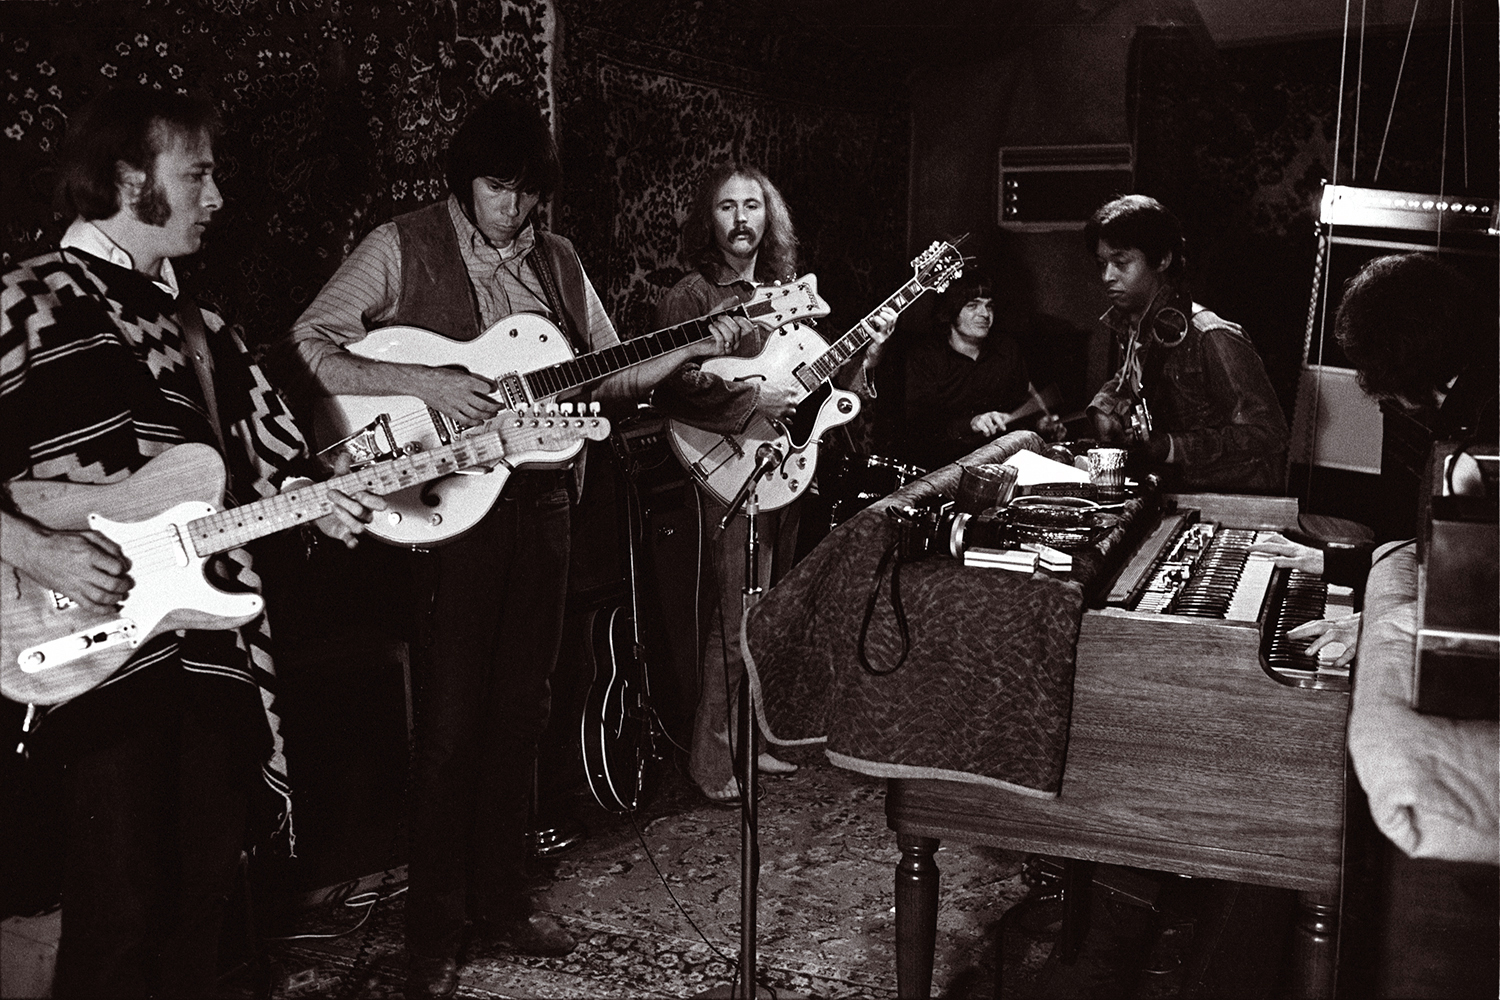 Crosby, Stills, Nash and Young with Dallas Taylor and Greg Reeves.